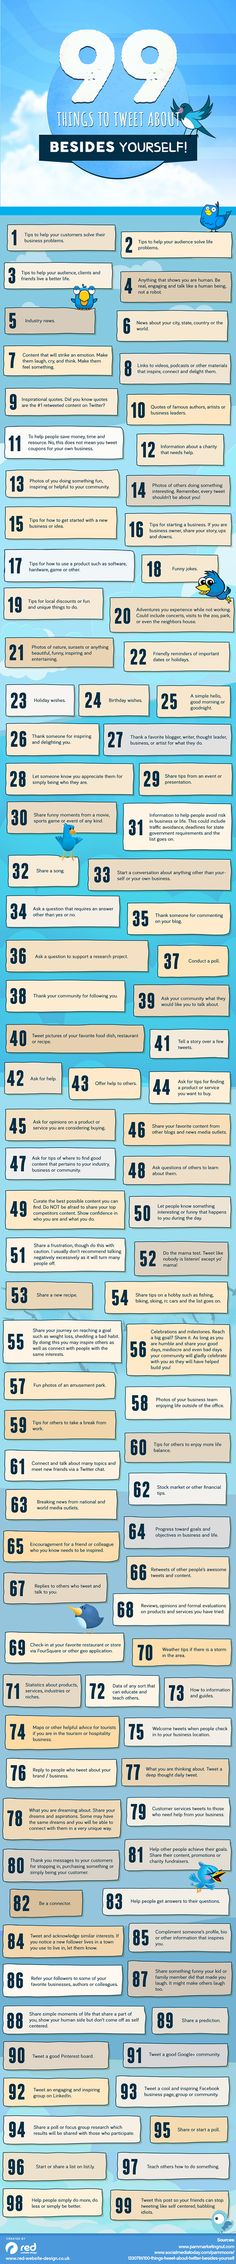 99 Things to Tweet About Besides Yourself [Infographic] |  By: Red Website Design via ScoopIt | #twitter #socialmedia #socialmediamarketing #infographic